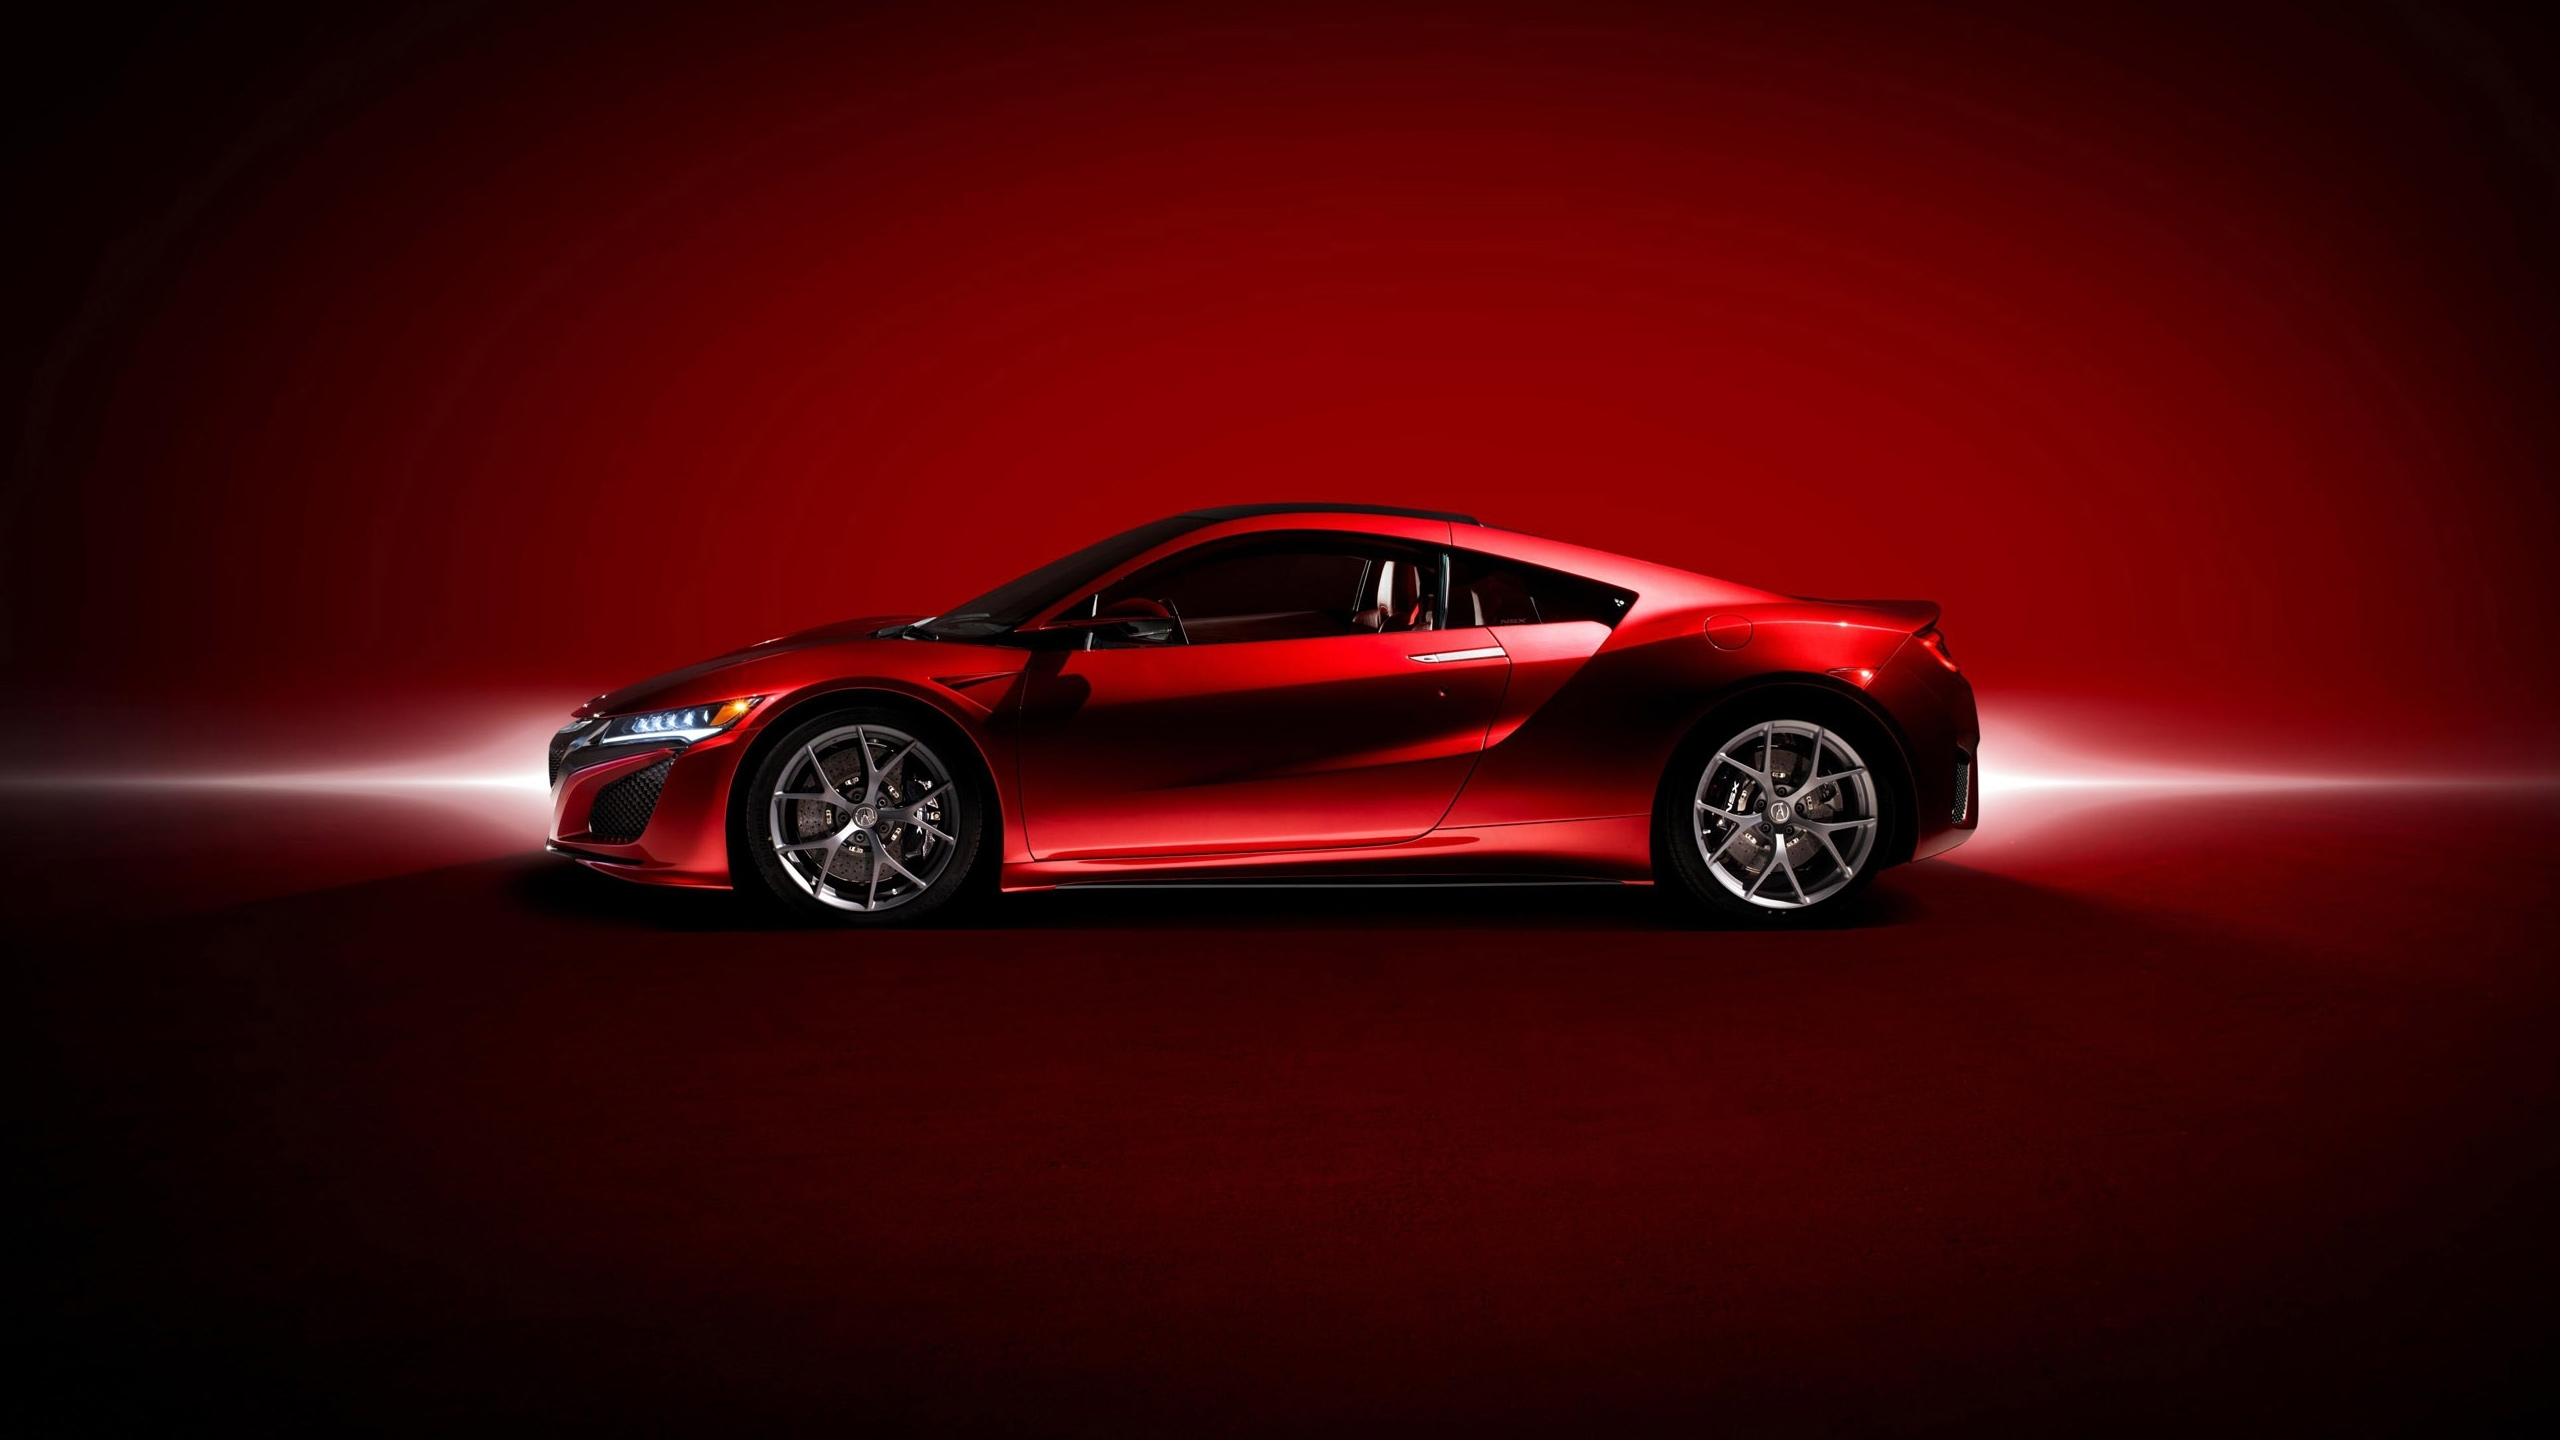 acura nsx 2017 wallpaper | hd car wallpapers